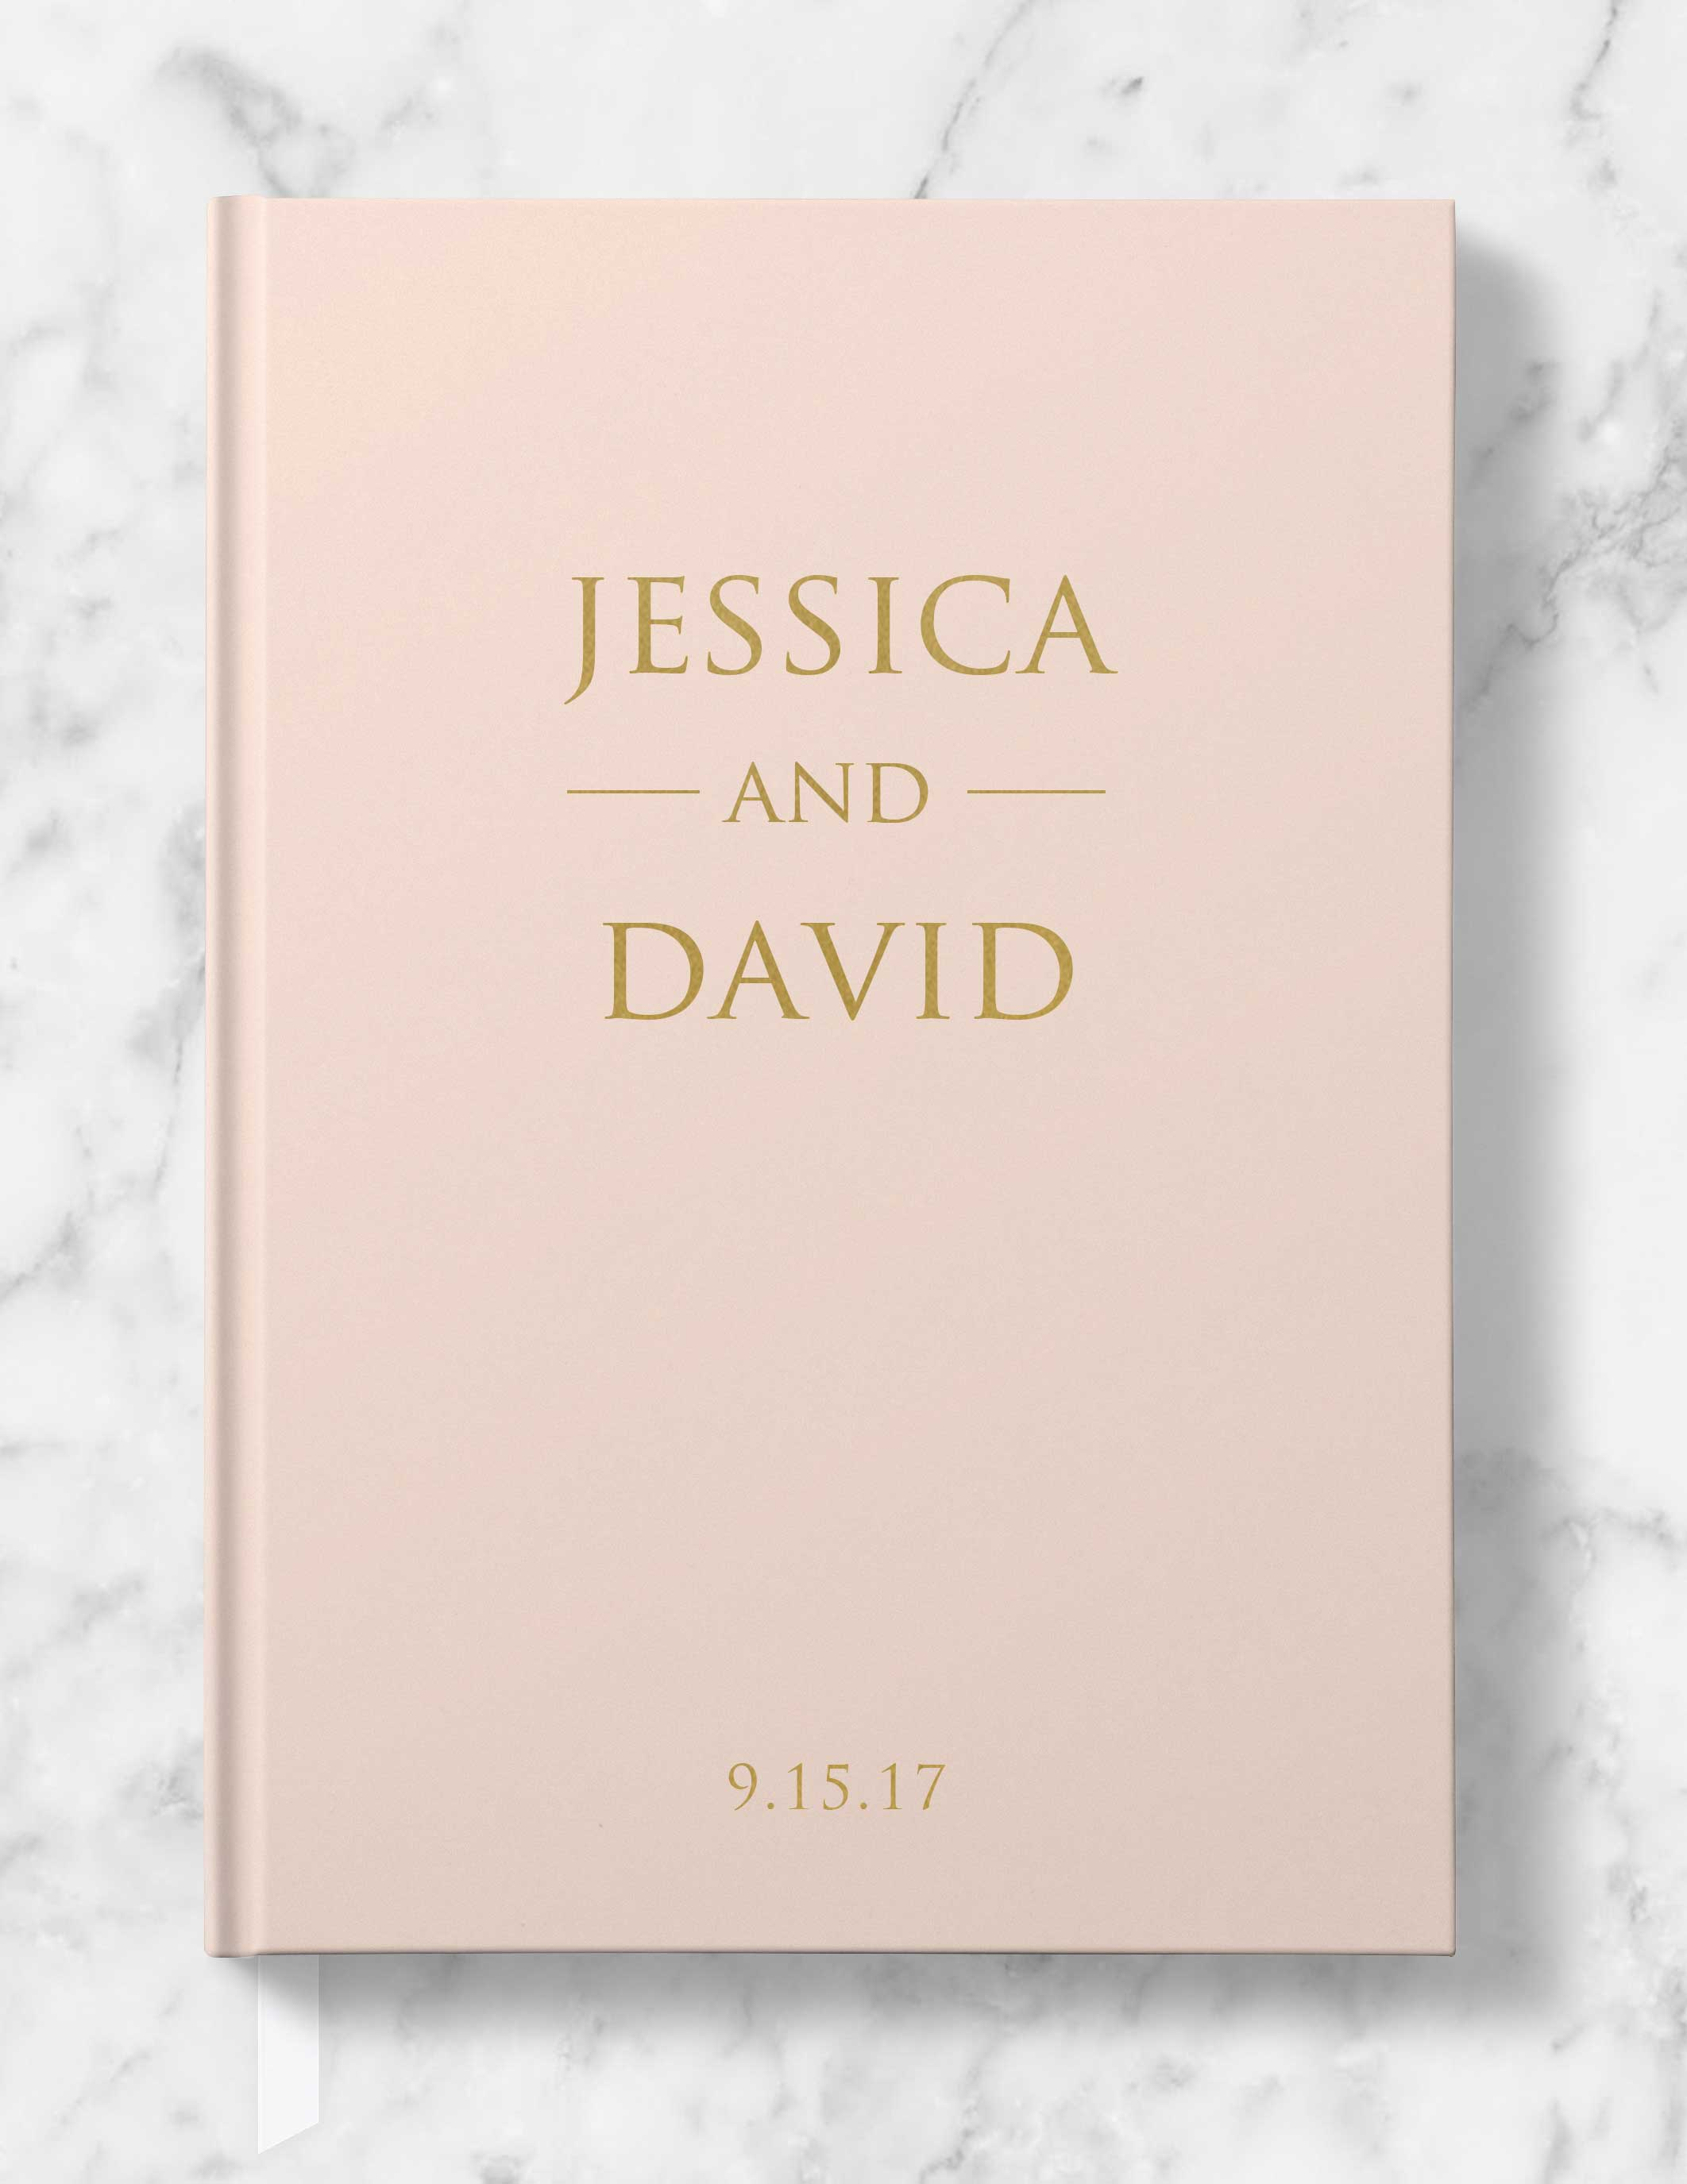 Personalized Wedding Guest Book.Classic Personalized Wedding Guest Book Gold Silver Or Rose Gold Foil Helen Collection